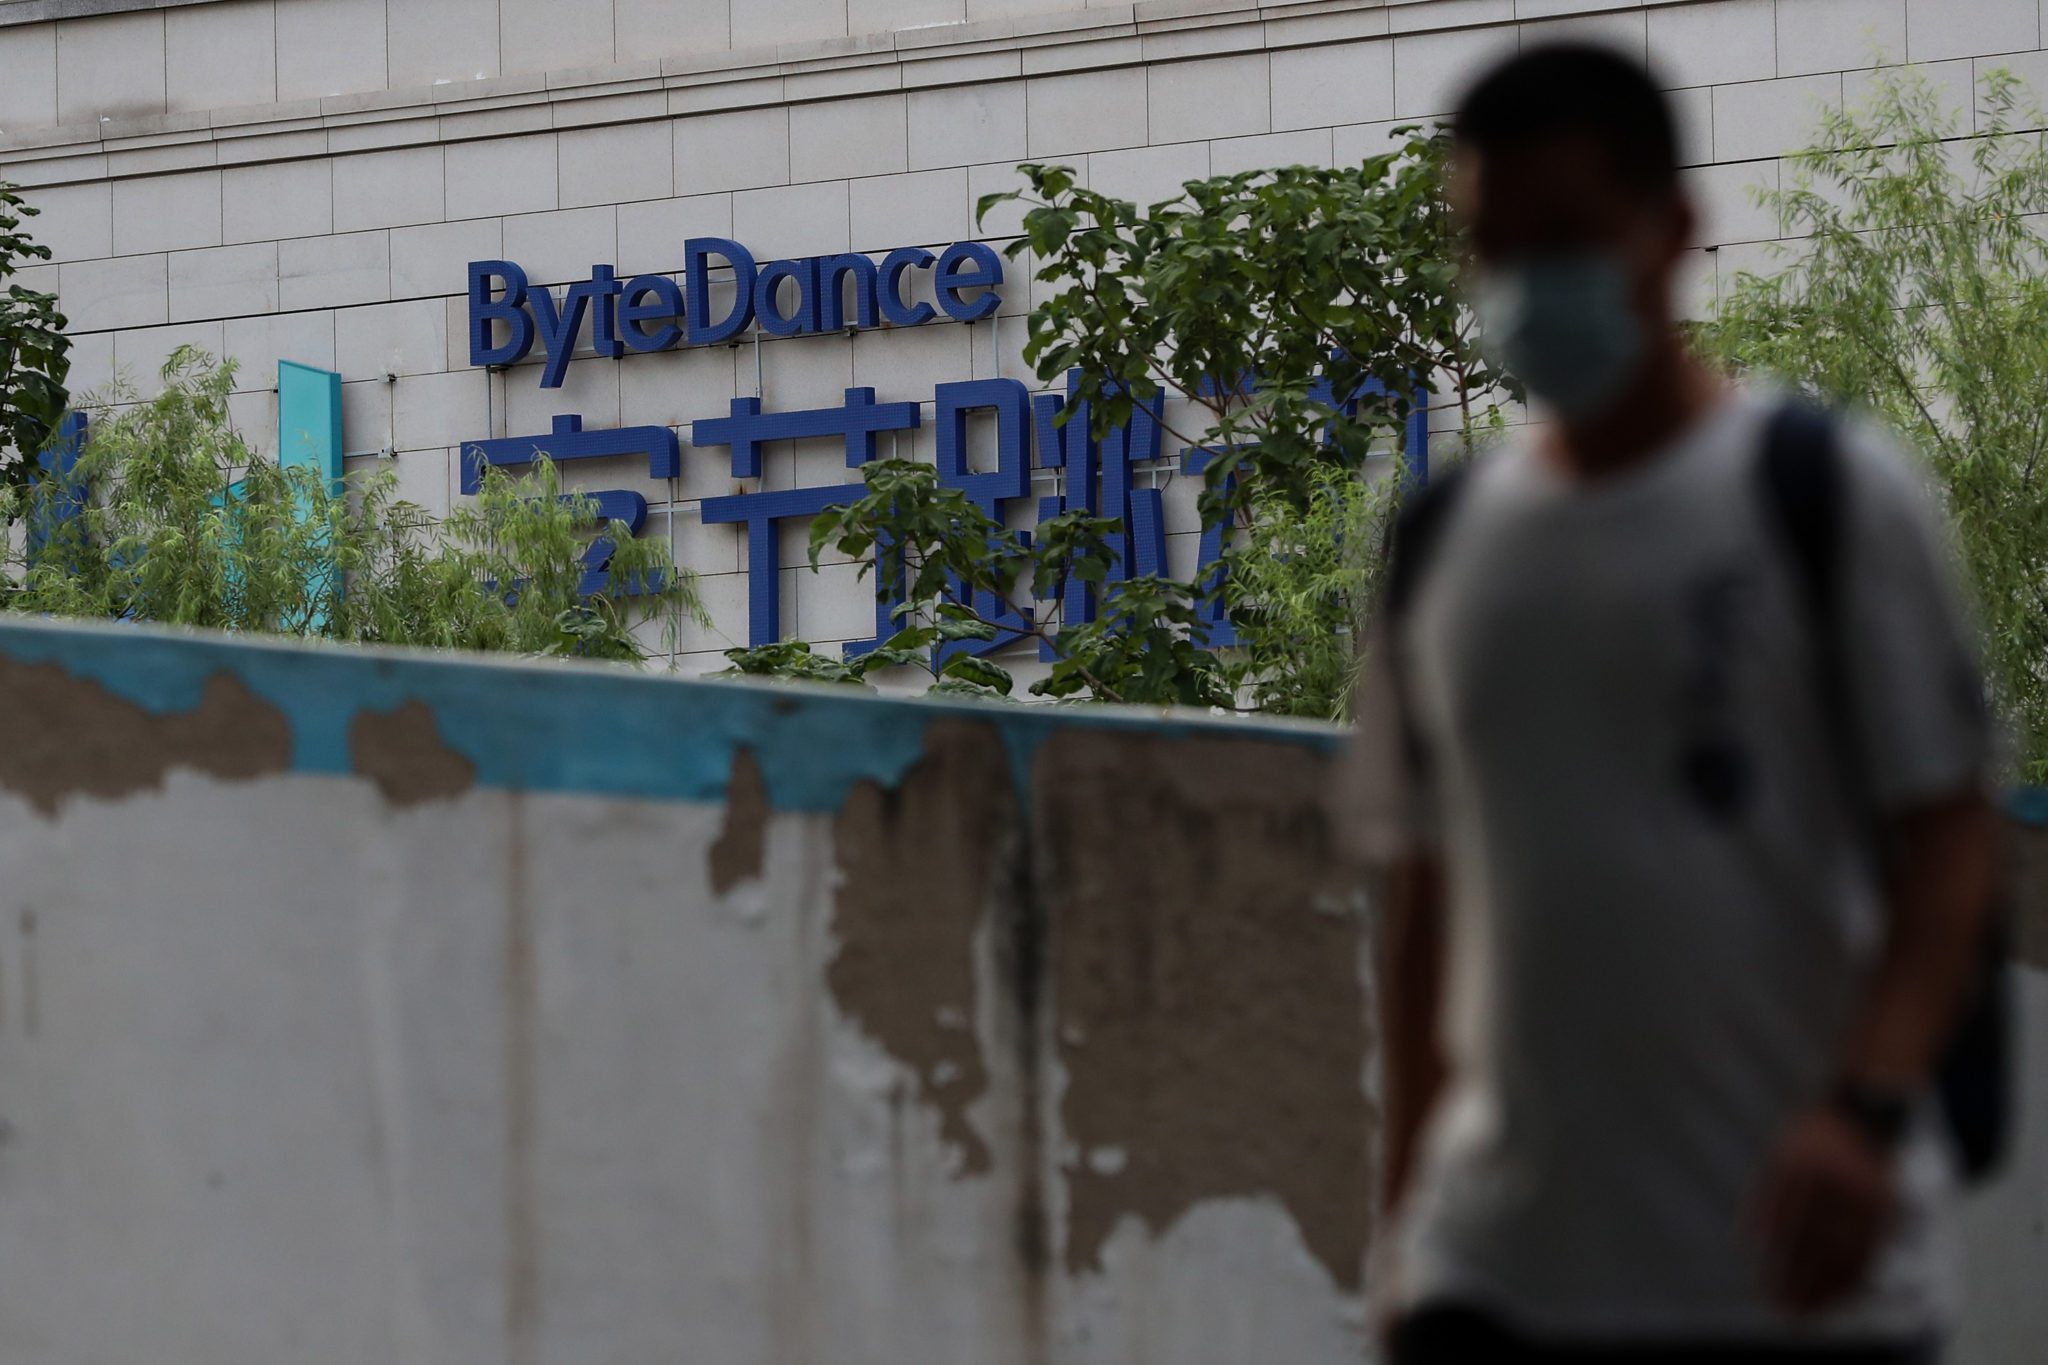 BEIJING, CHINA - AUGUST 04: A man wears protective mask as he walks past the ByteDance Ltd.'s office on August 04, 2020 in Beijing, China. TikTok is a Chinese video-sharing social networking service owned by a Beijing based internet technology company, ByteDance. The President of the United States Donald Trump is threatening and planning to ban the popular video sharing app TikTok from the US because of the security risk. Microsoft is interested in purchasing the TikTok platform in the United States. (Photo by Emmanuel Wong/Getty Images)